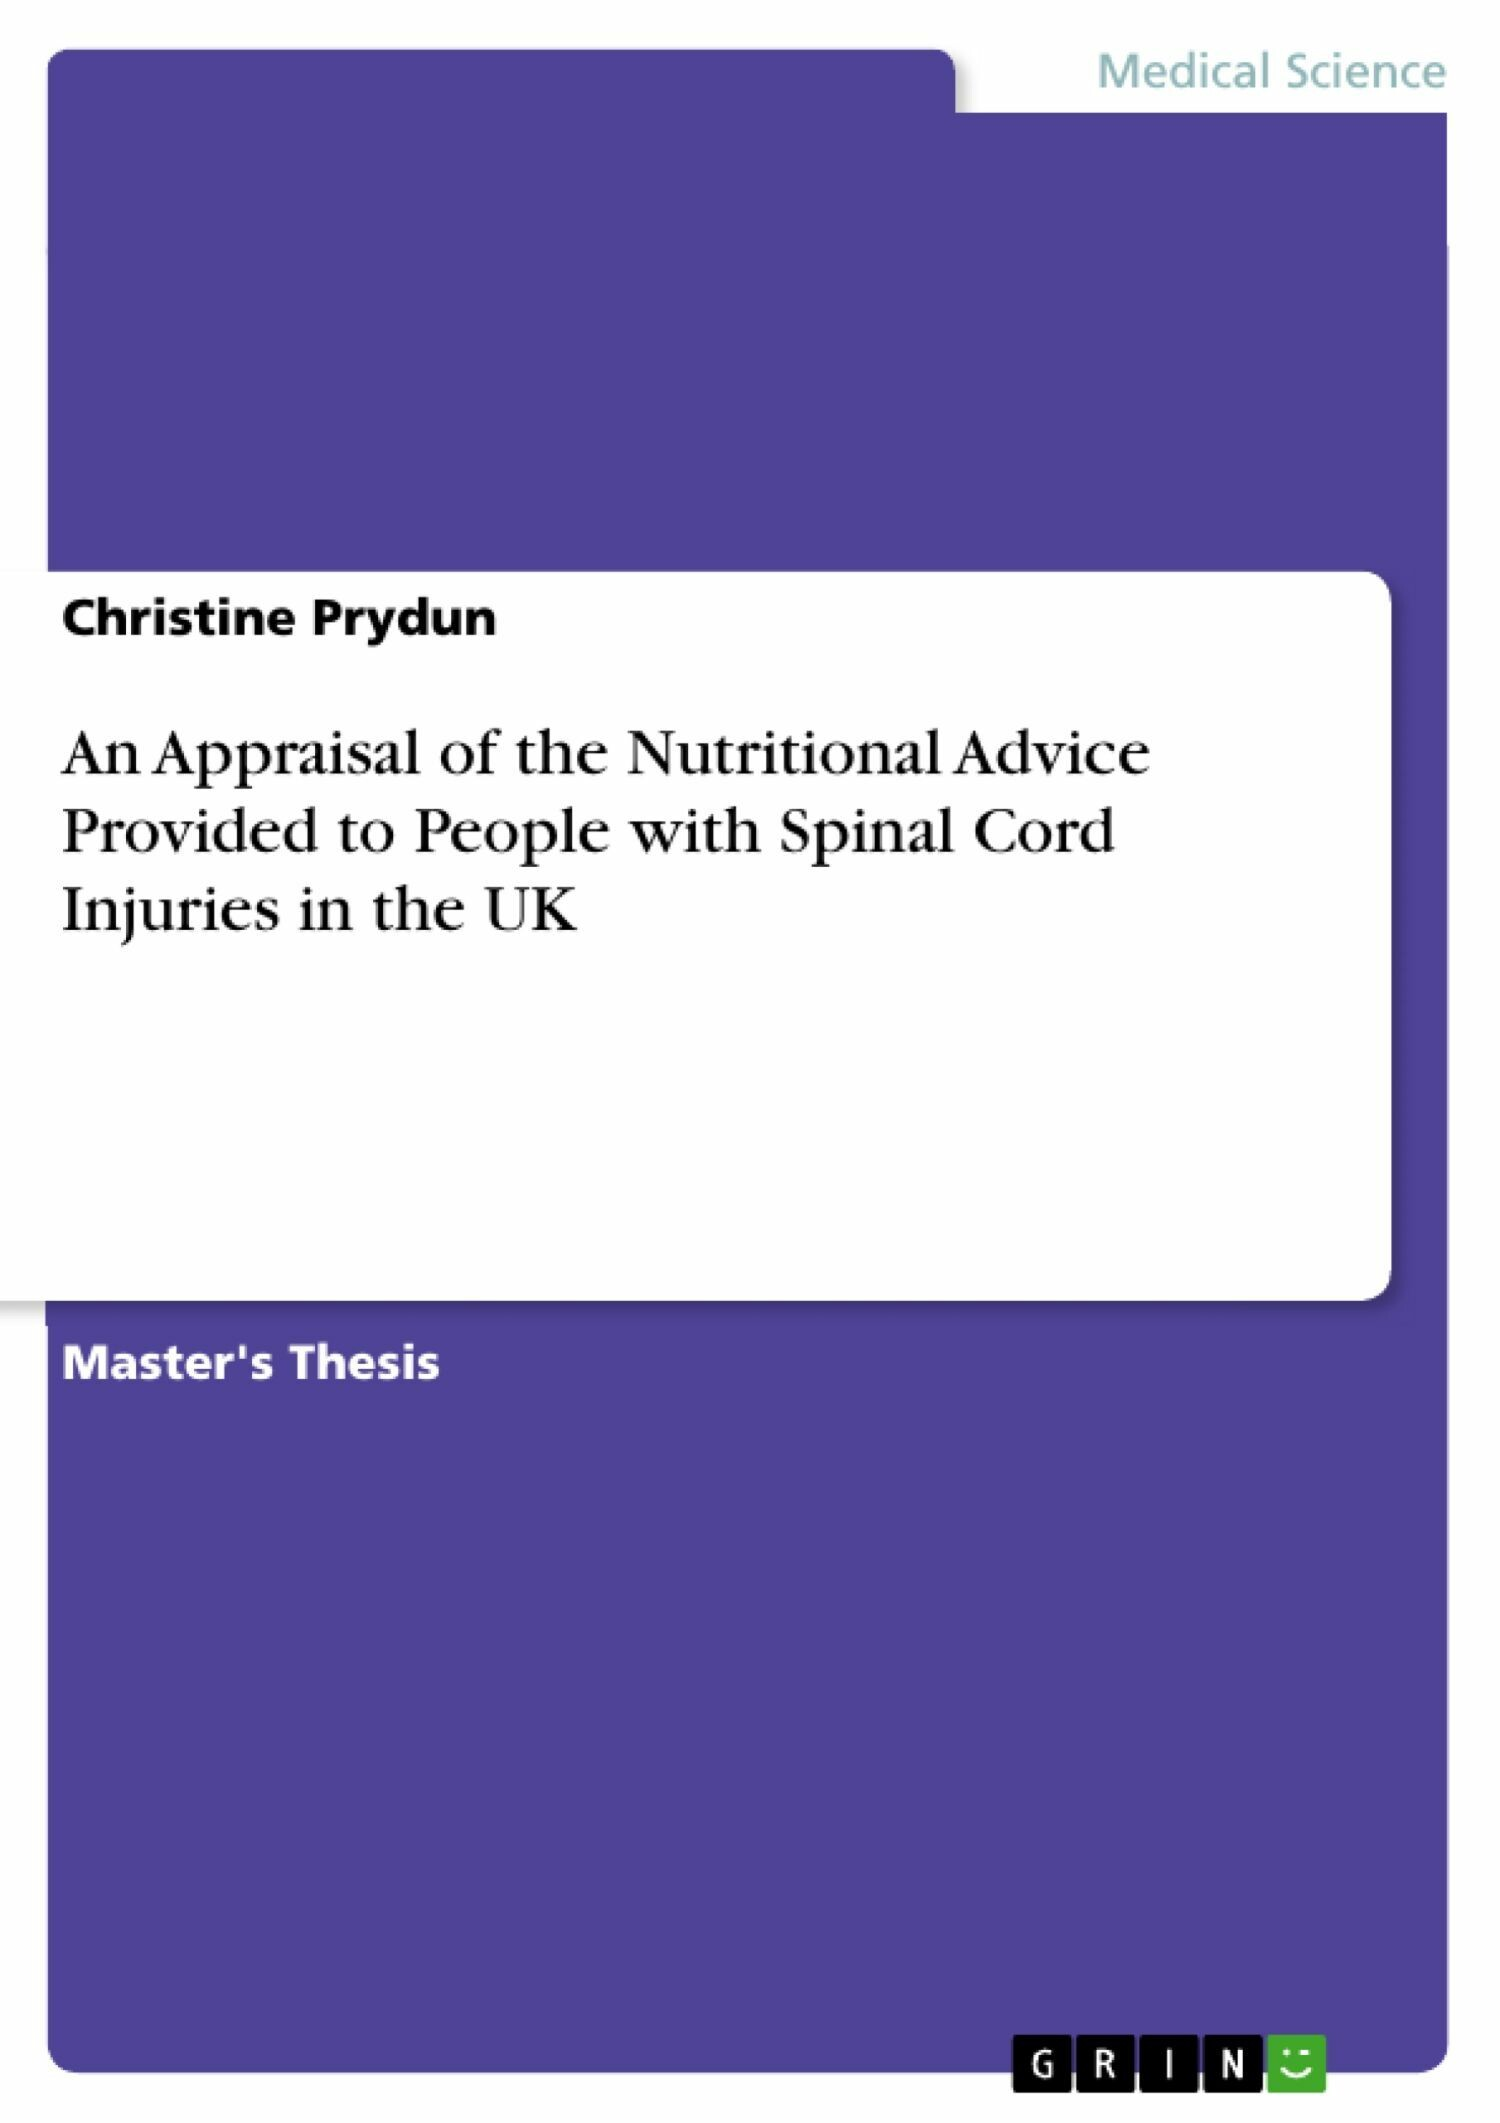 An Appraisal of the Nutritional Advice Provided to People with  Spinal Cord Injuries in the UK